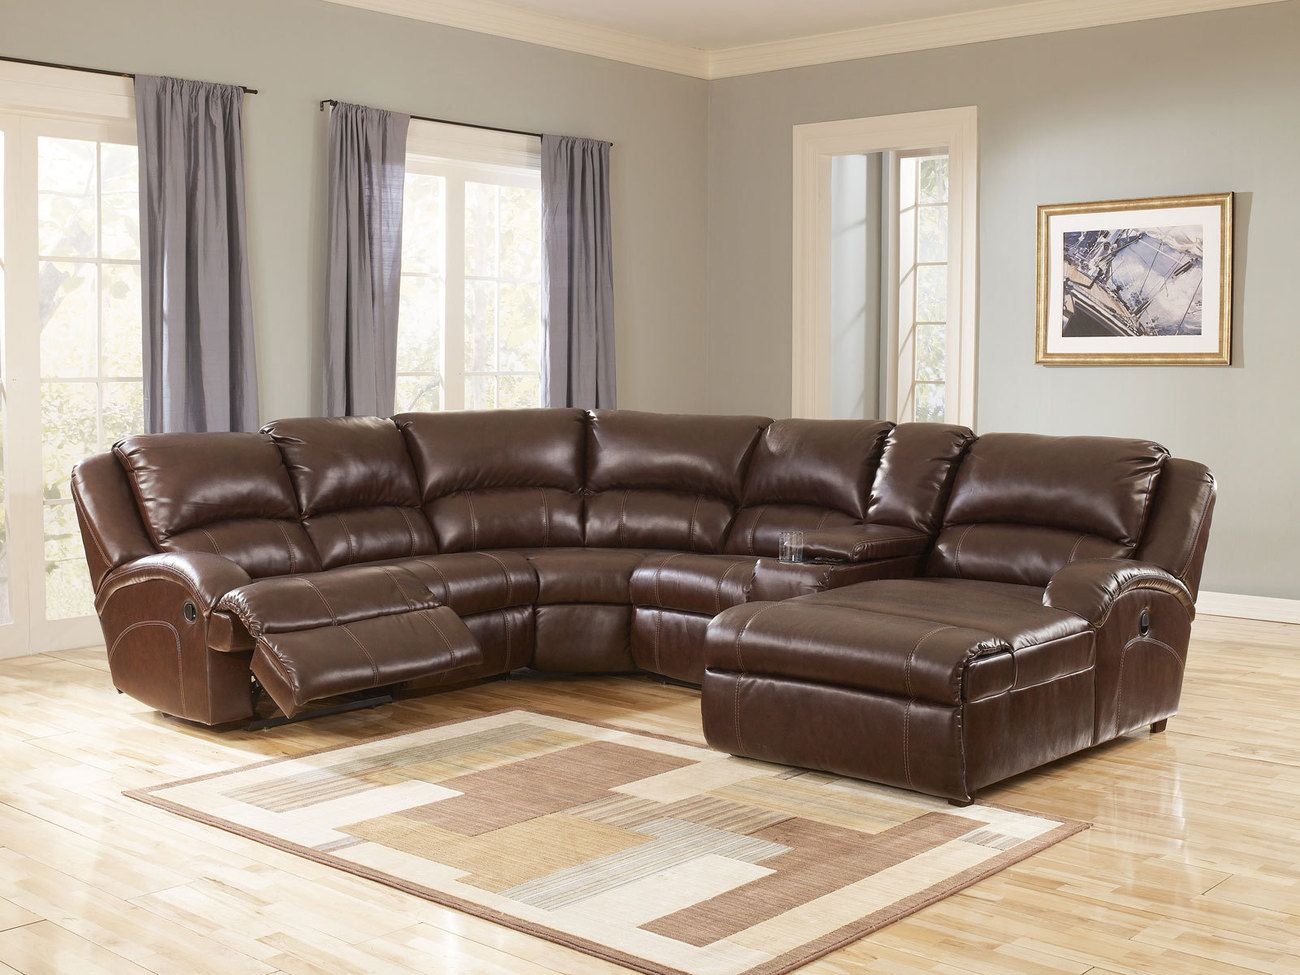 Nice Unique Leather Reclining Sectional Sofa 46 For Hme Designing Inspiration With